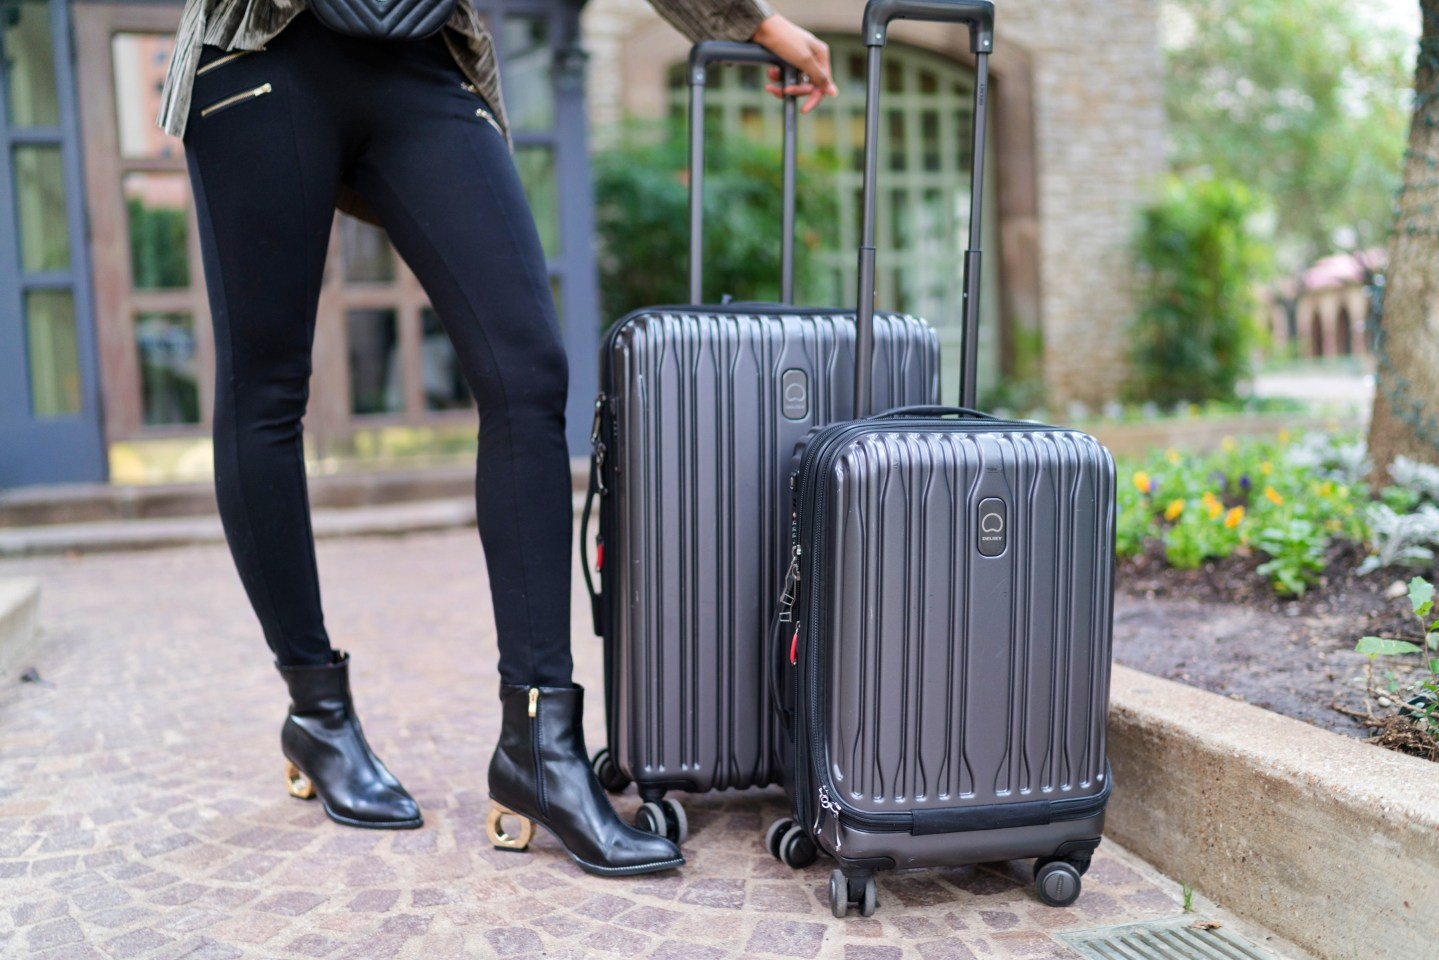 Best Black Friday Deals - Delsey Luggage, Clothes, Beauty & Electronics